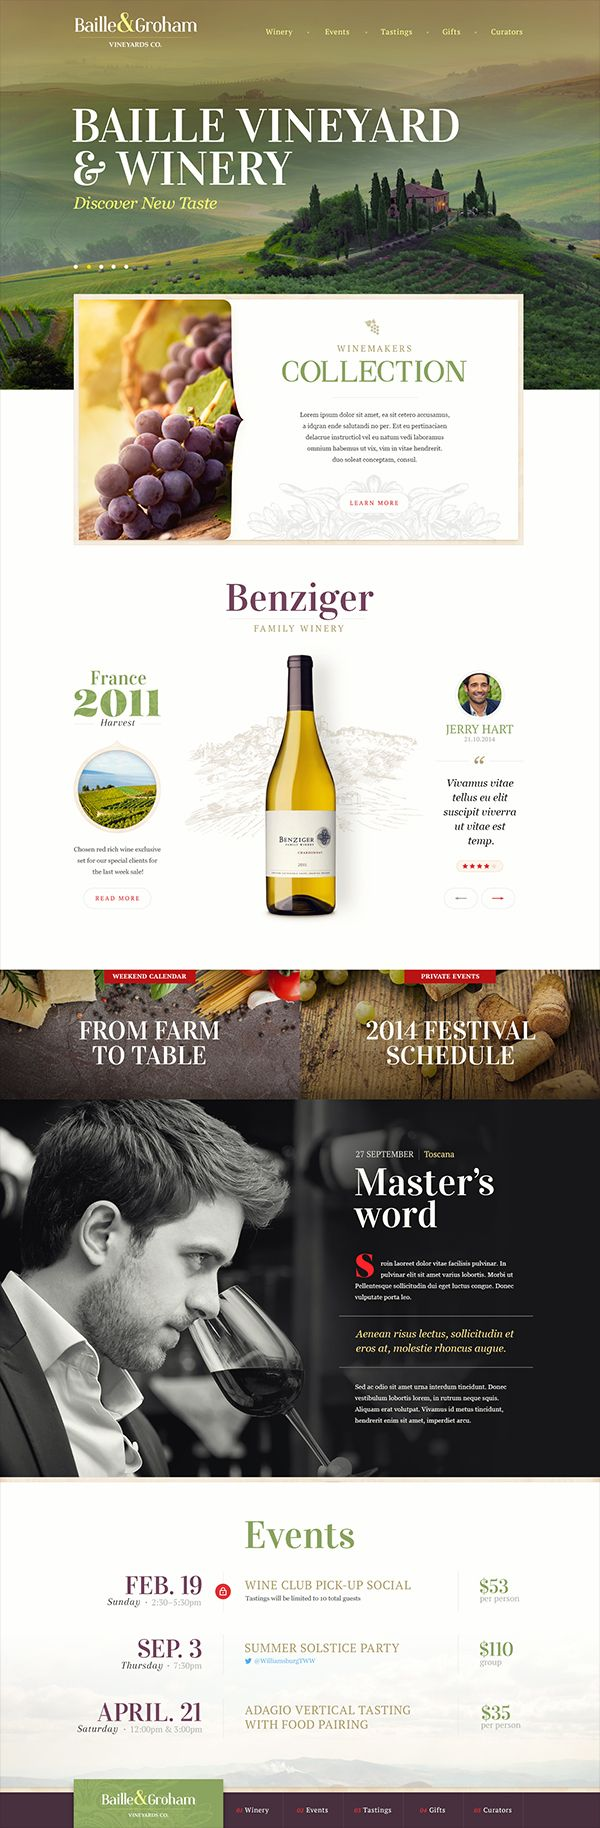 Clear webdesign - Important place for pictures and font / #wine